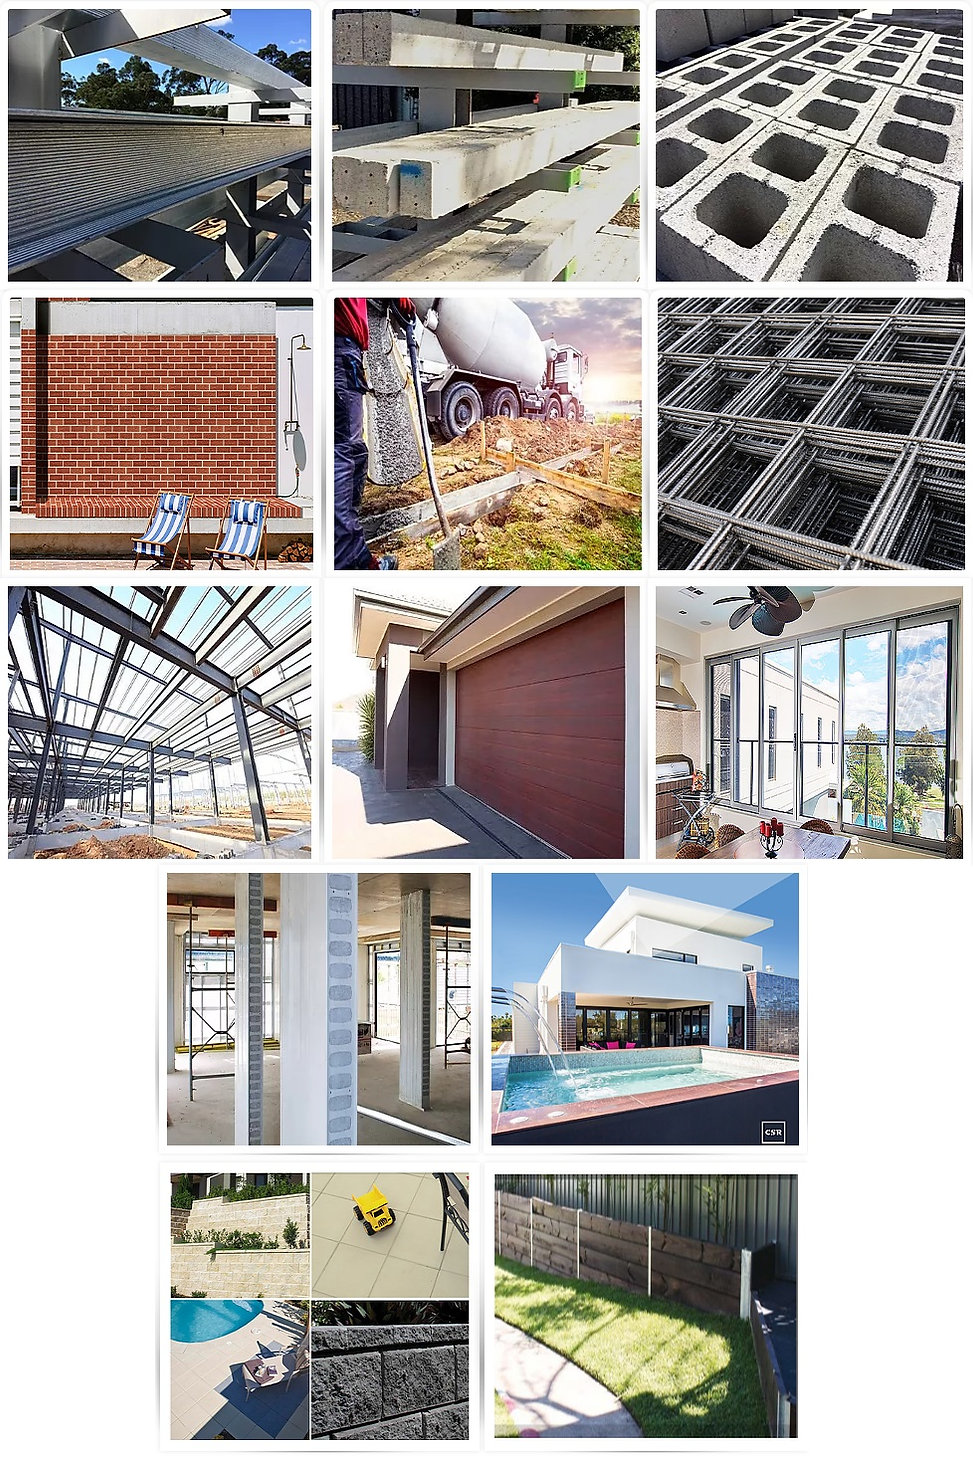 Complete Lintels Building Supplies | Galintels, Concrete Lintels, Blocks, Bricks, Premix Concrete, Mesh Bar Accessories, Structural Steel, AFS Rediwall, Hebel, Garage Doors, Windows